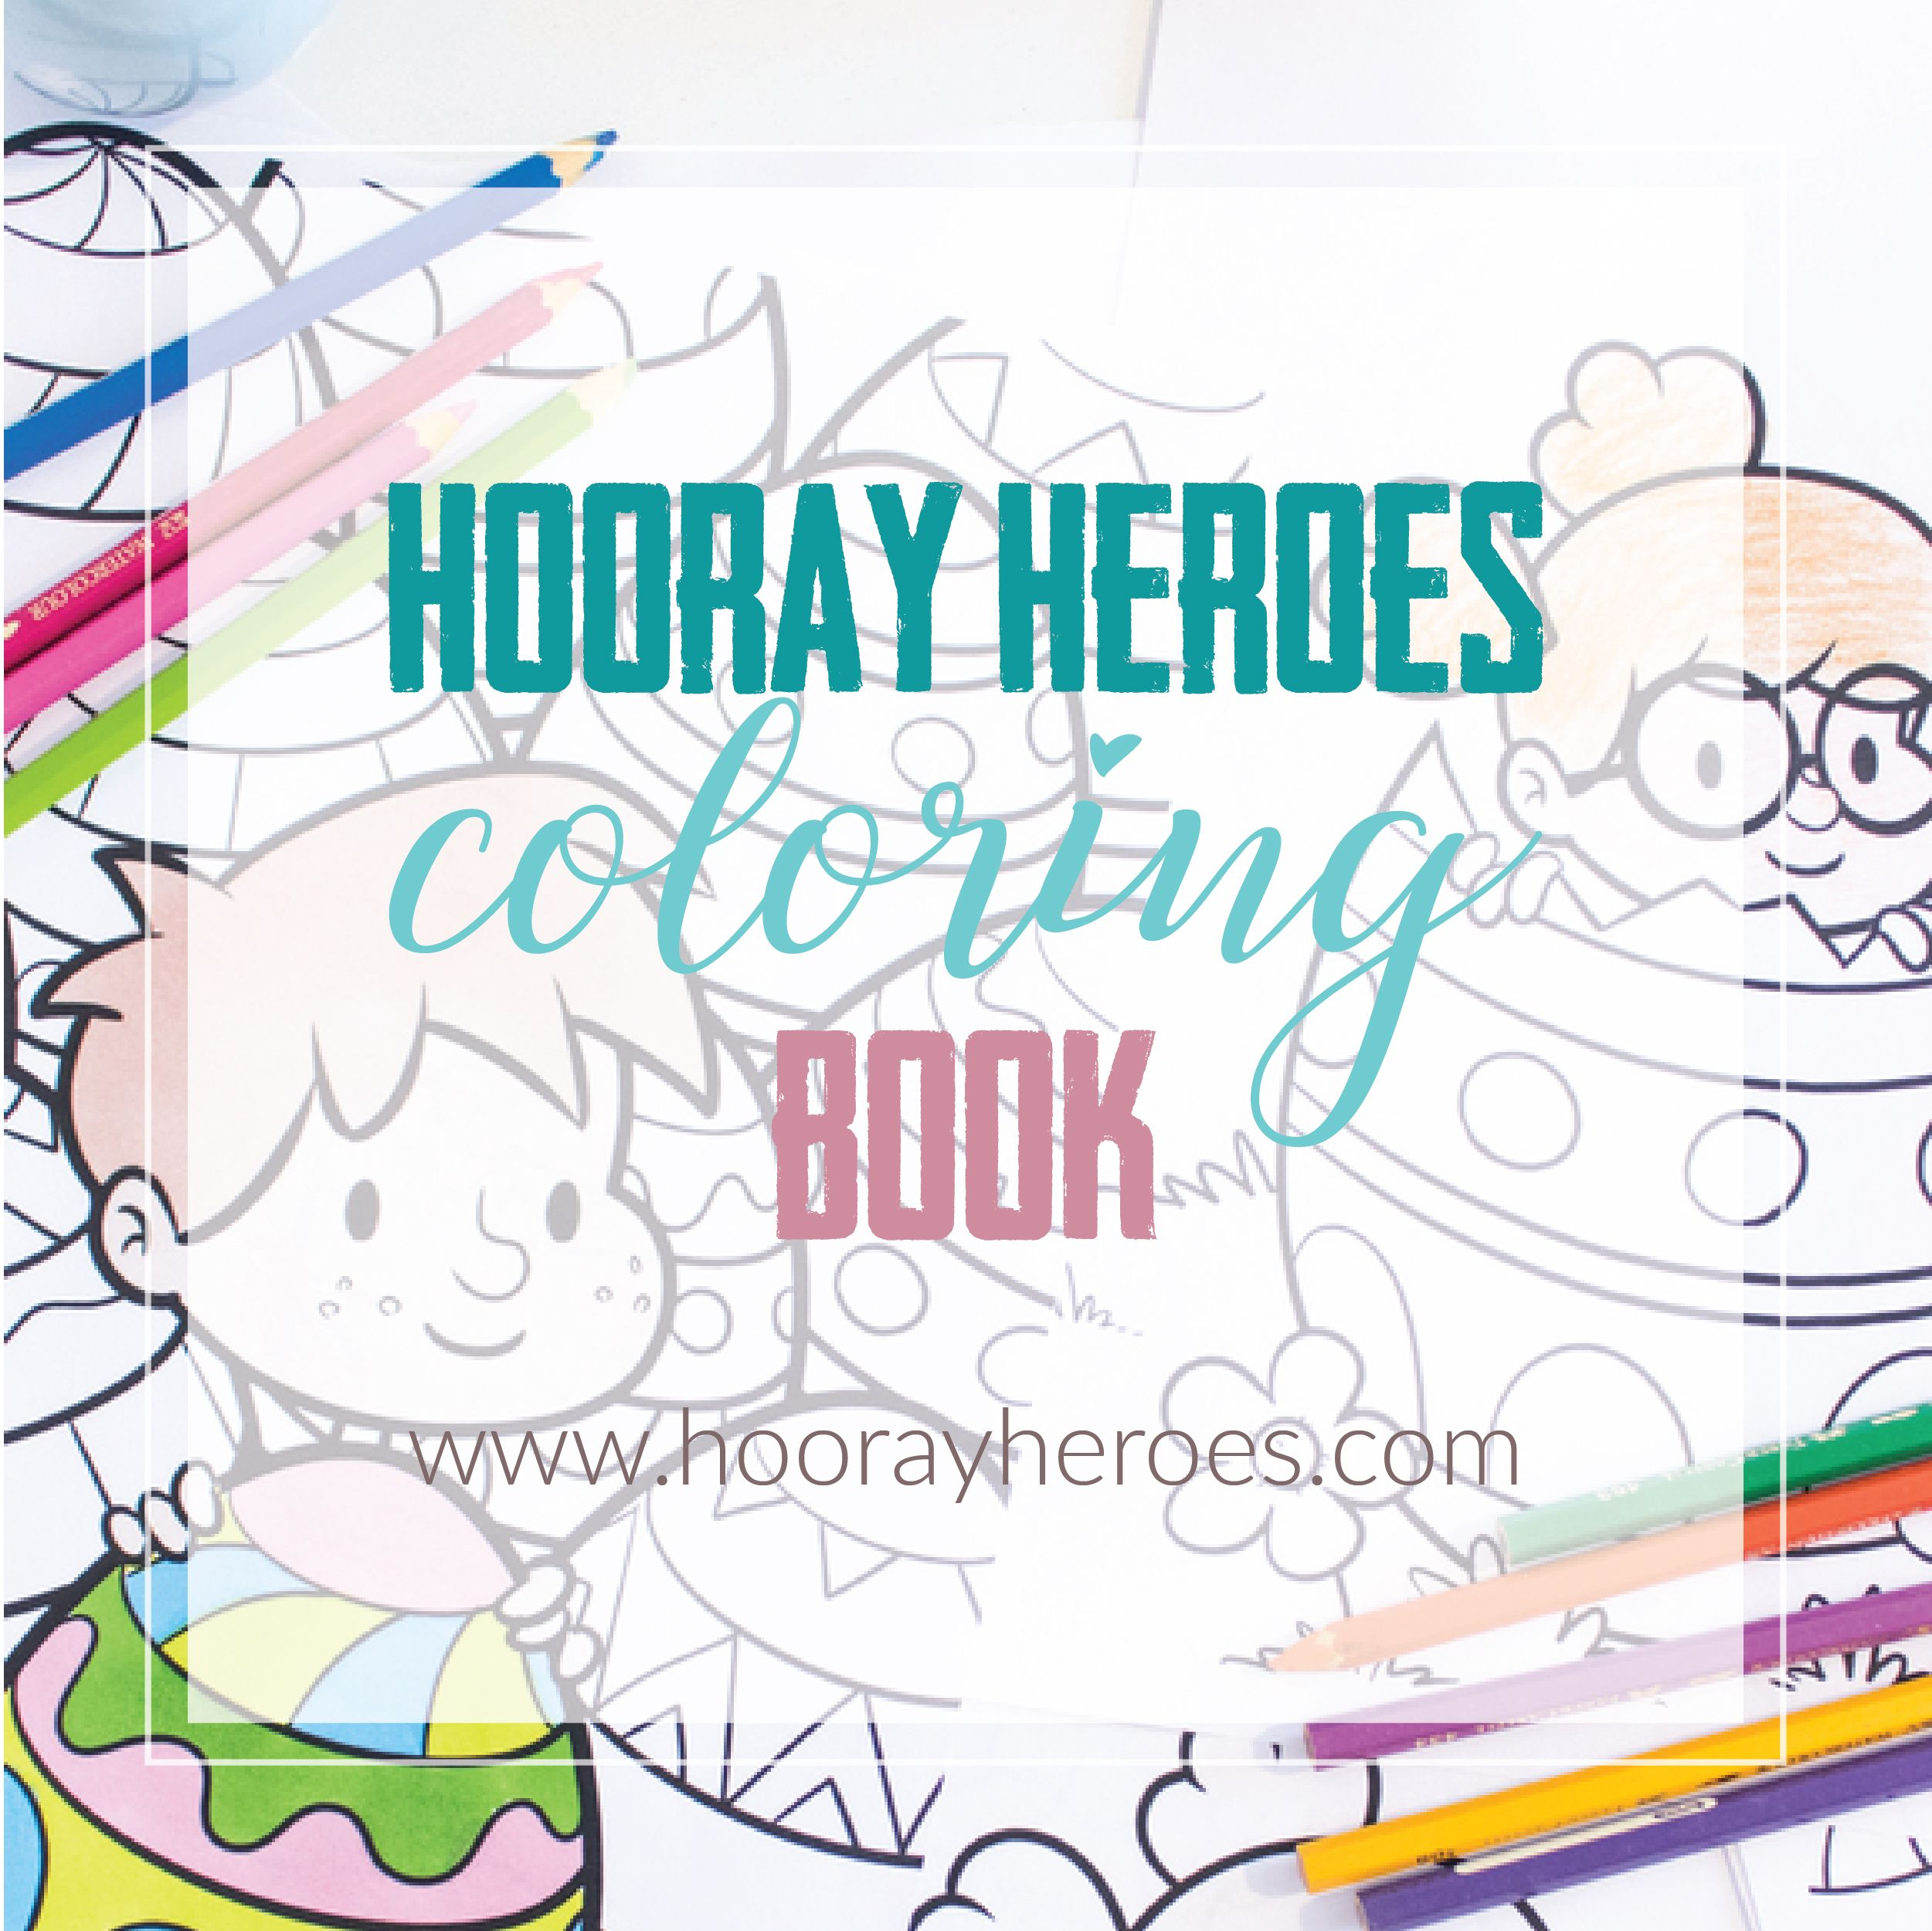 Hooray Heroes free personalized coloring books! | Free personalized ...